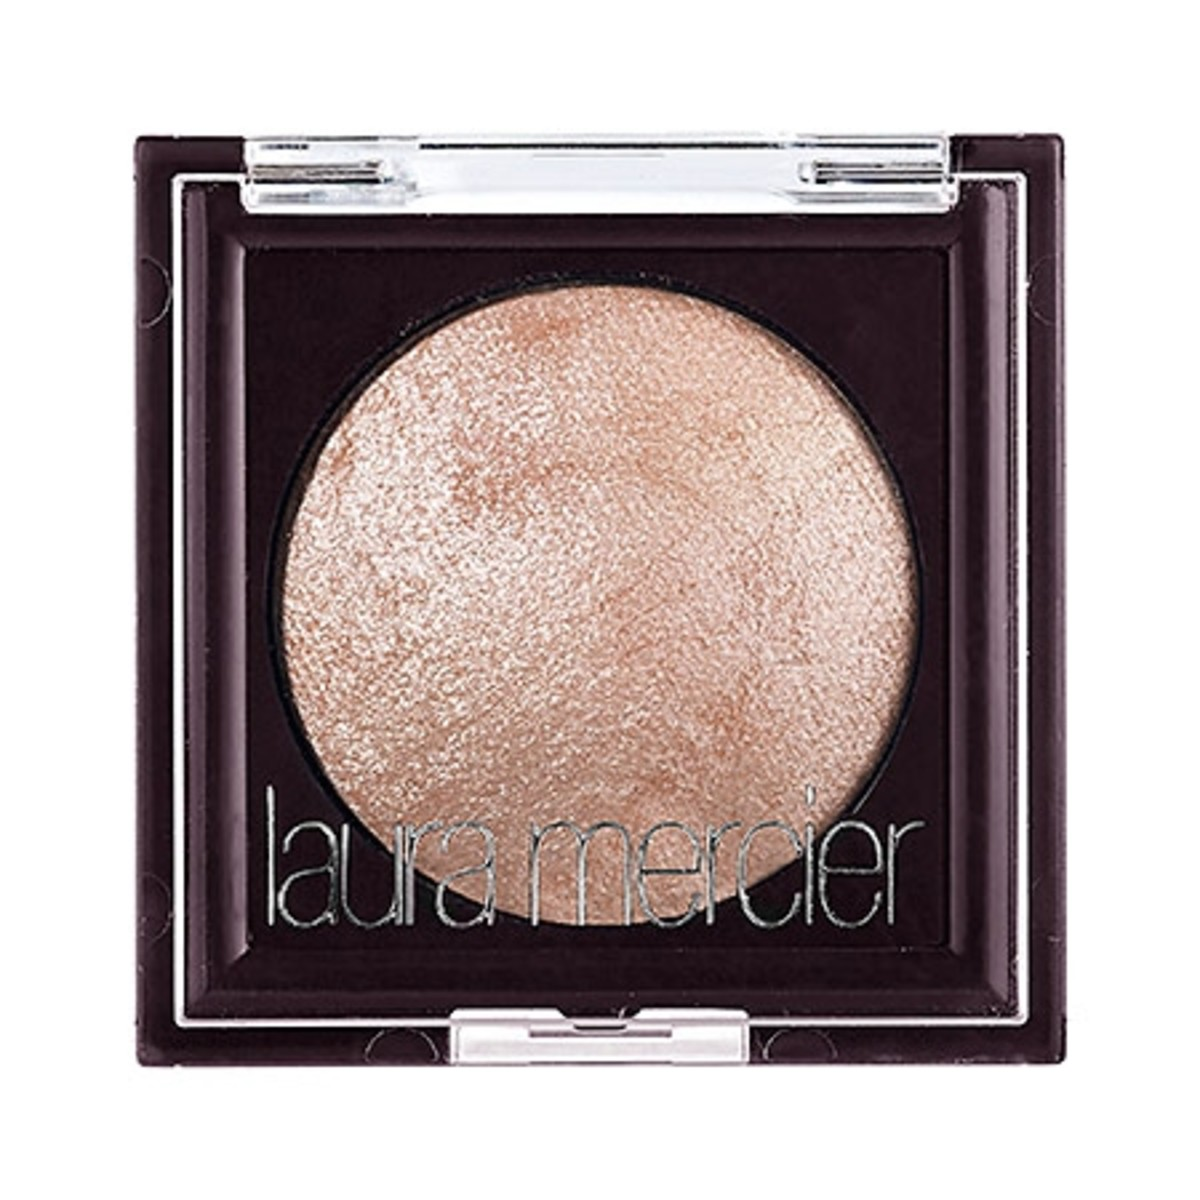 Laura Mercier Baked Eye Colour in Ballet Pink